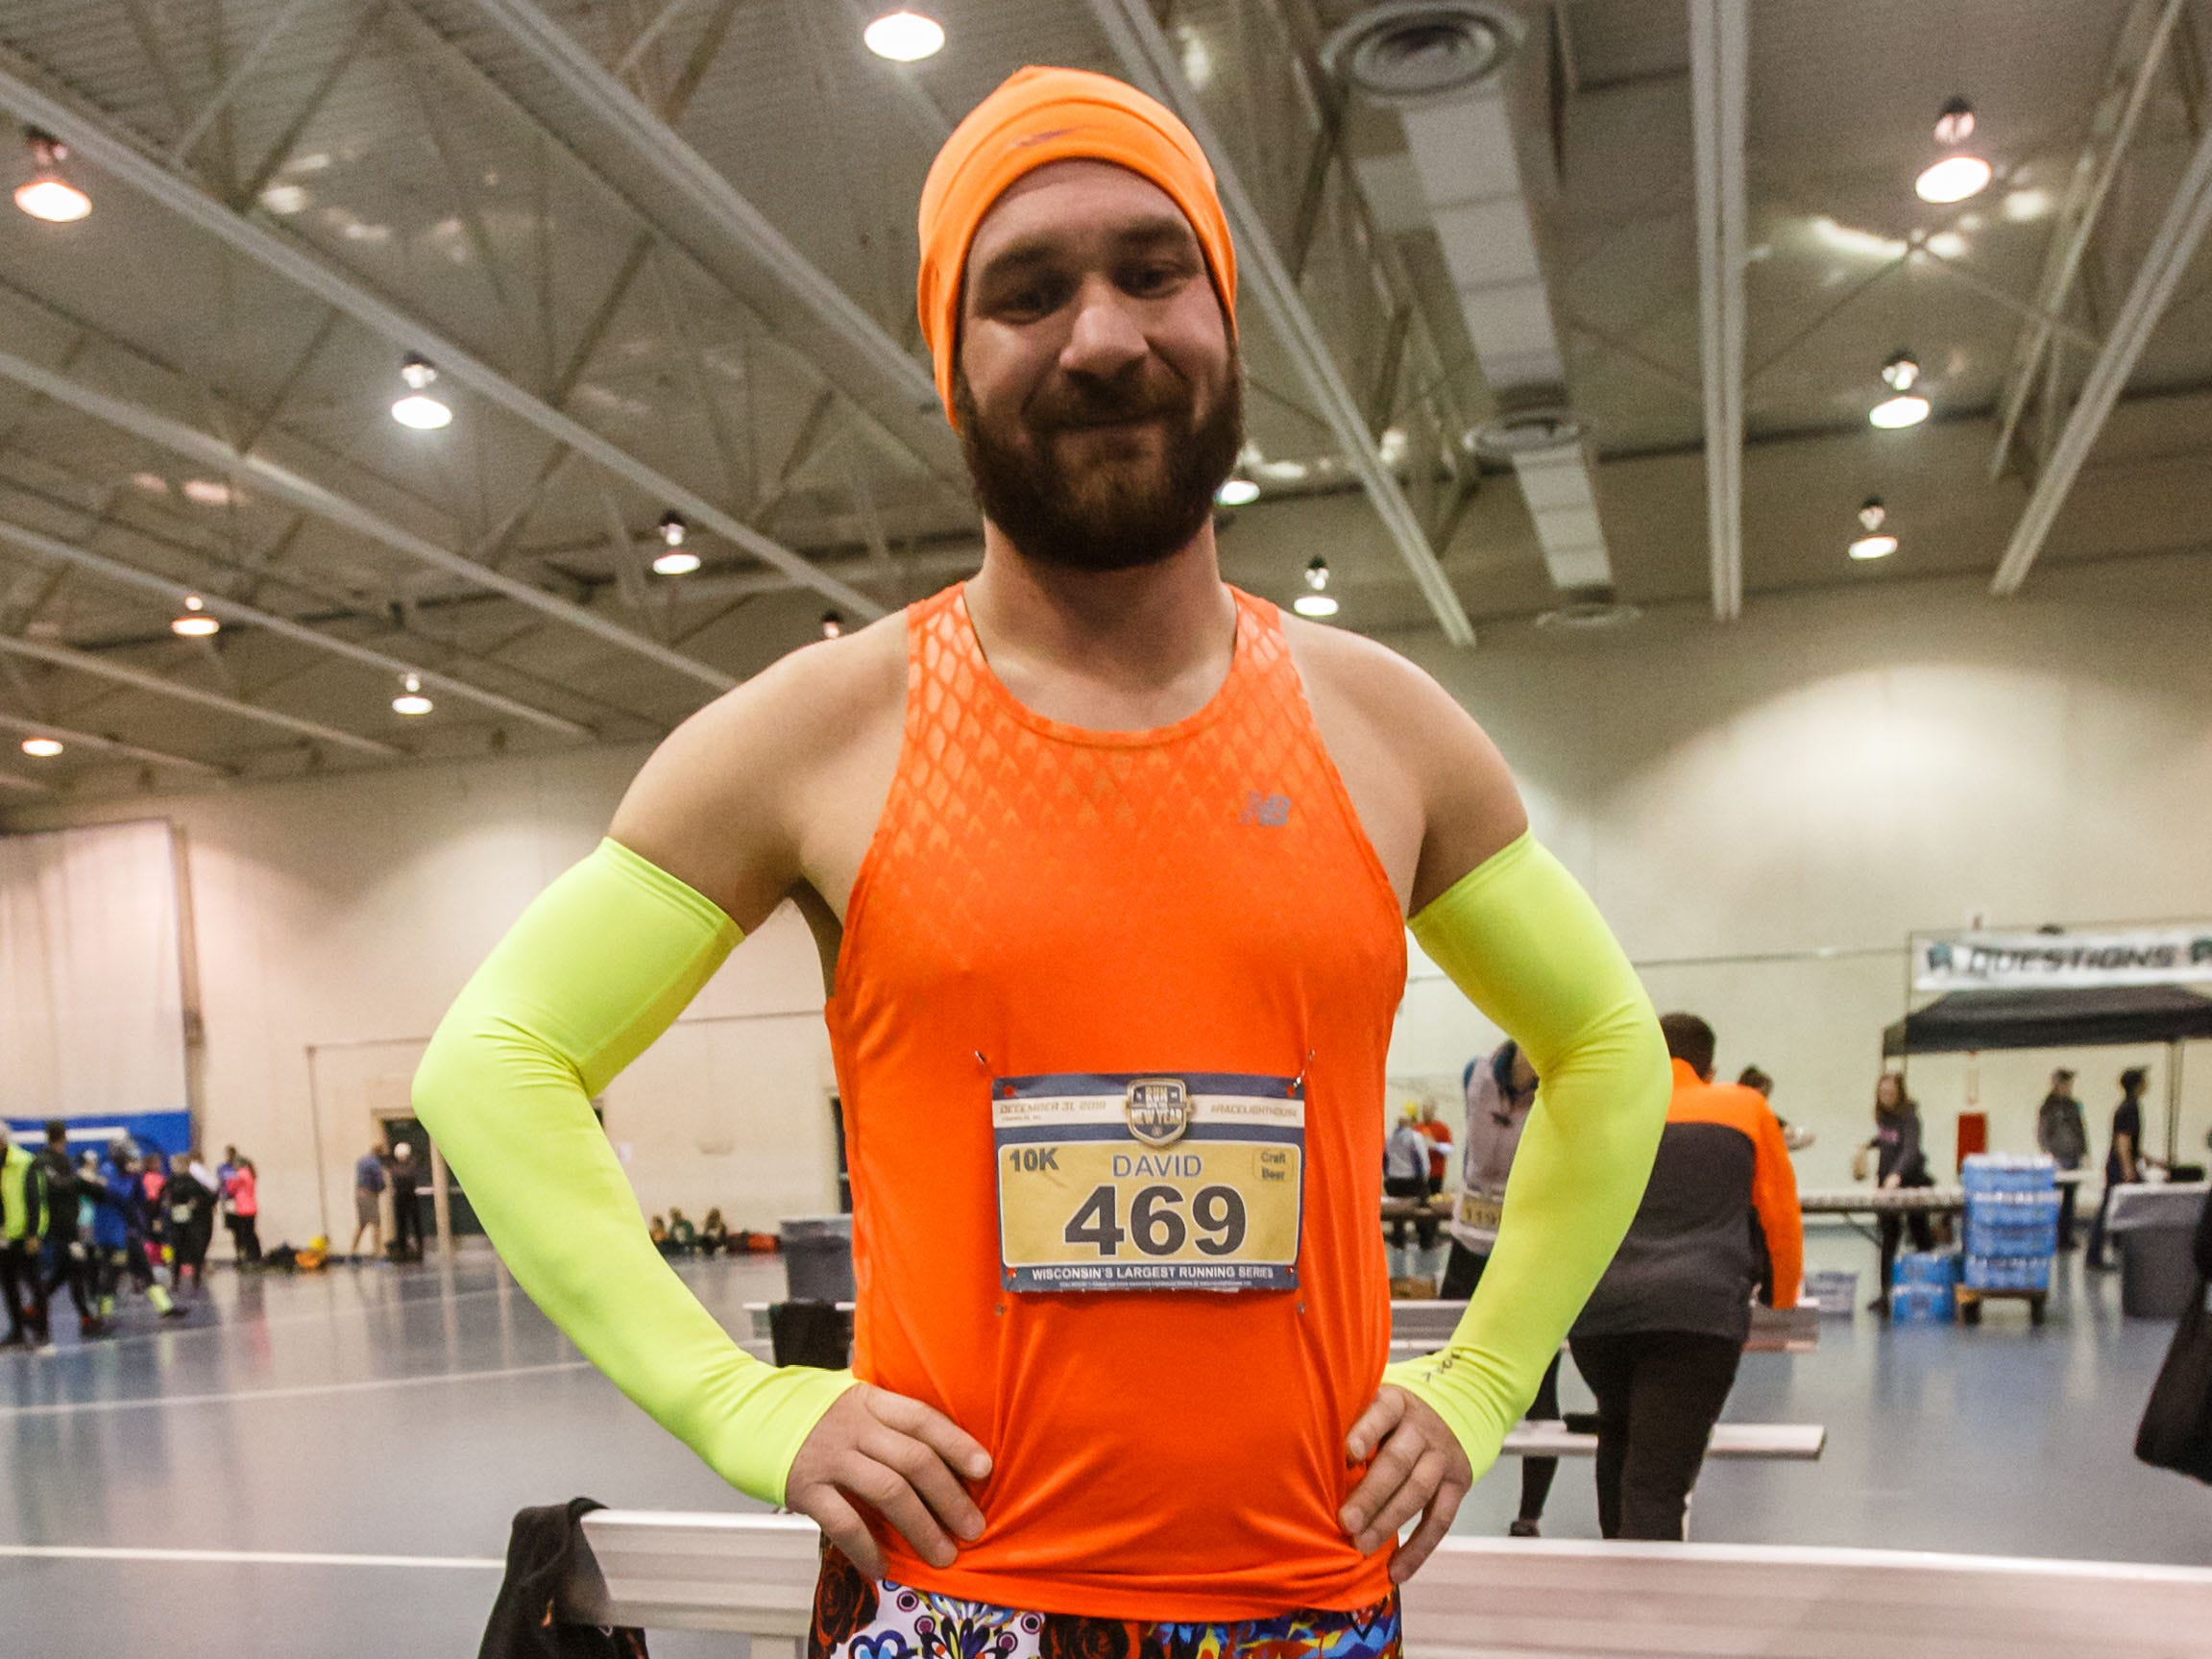 Dave Markle of Madison shows off a splash of color prior to the 14th annual Run Into the New Year hosted by Lighthouse Events at the Milwaukee County Sports Complex in Franklin on Monday, Dec. 31, 2018.